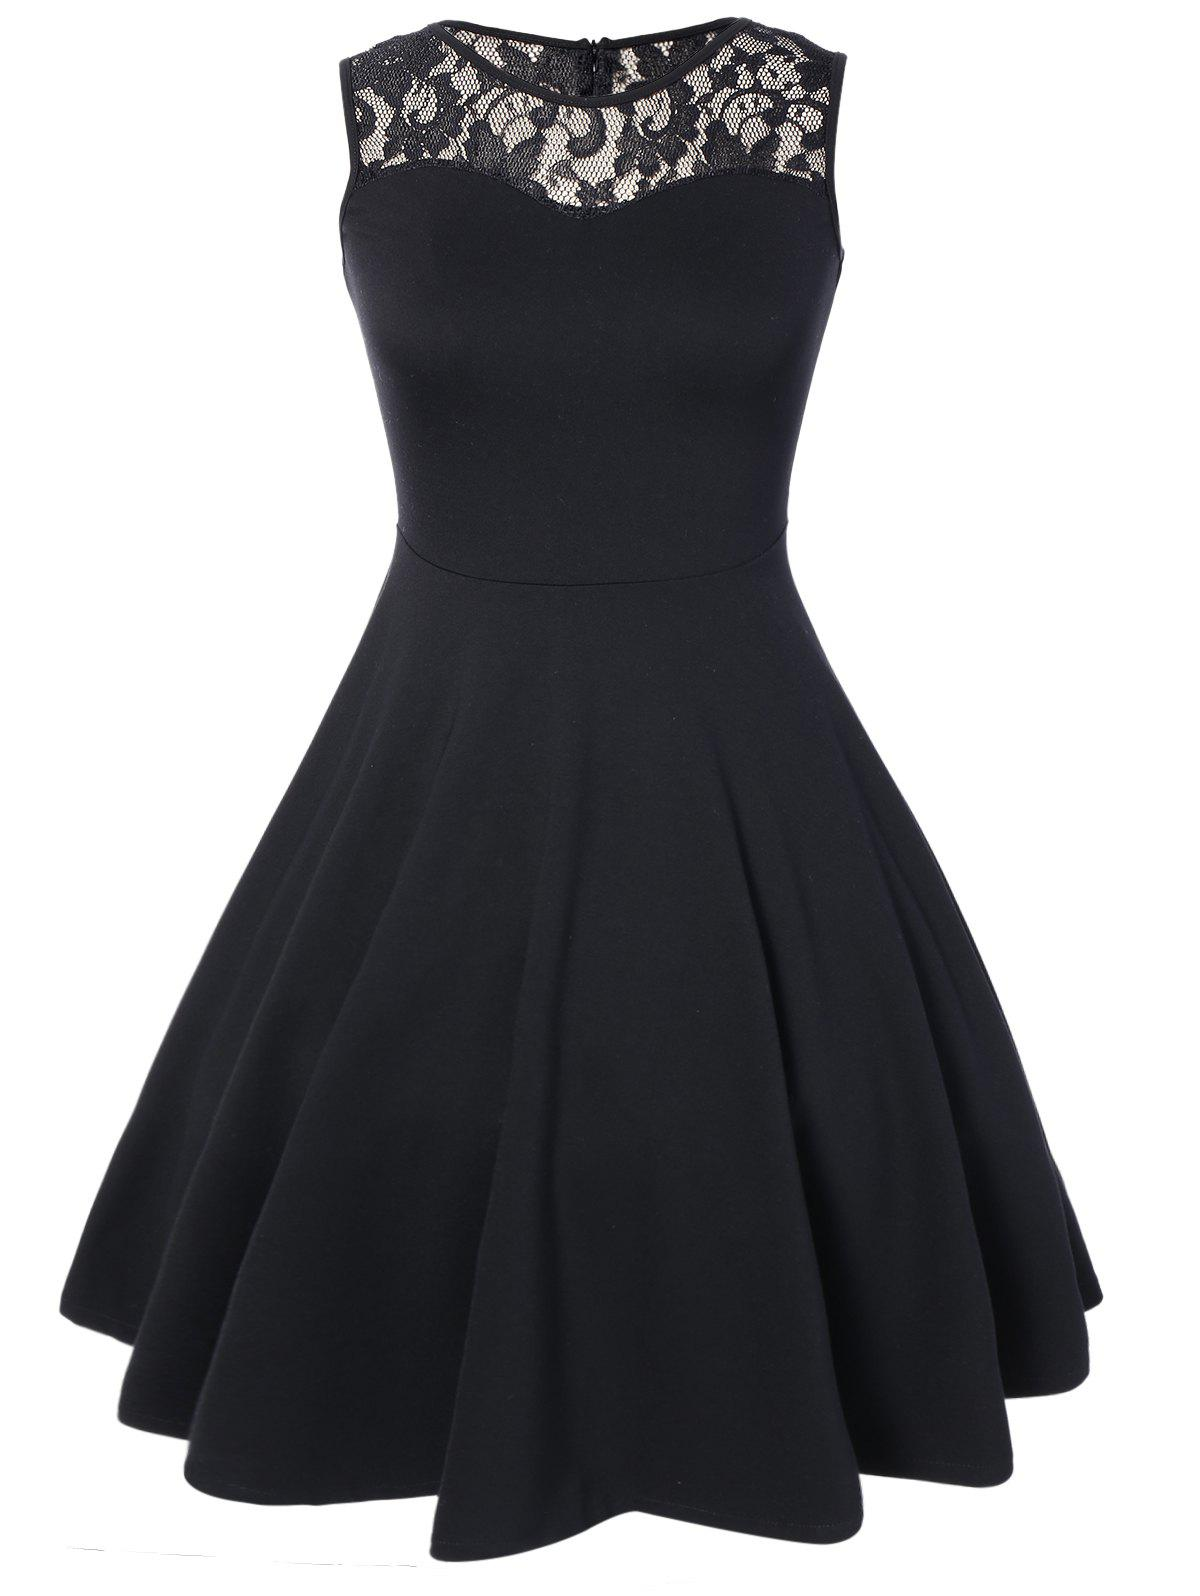 Sleeveless Lace A Line Party Swing Skater Dress - BLACK S